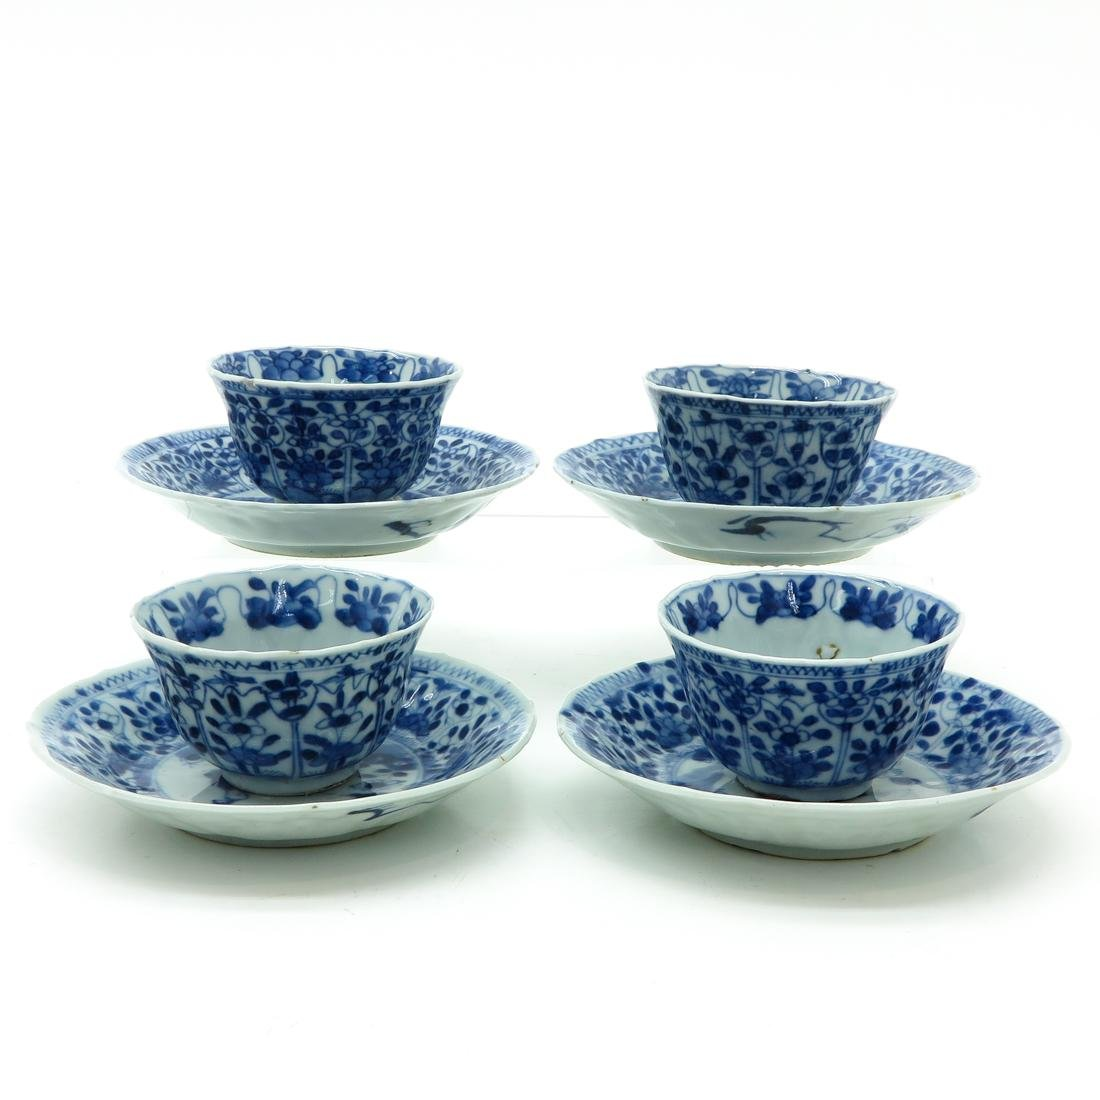 Lot of 4 Cups and Saucers - 3